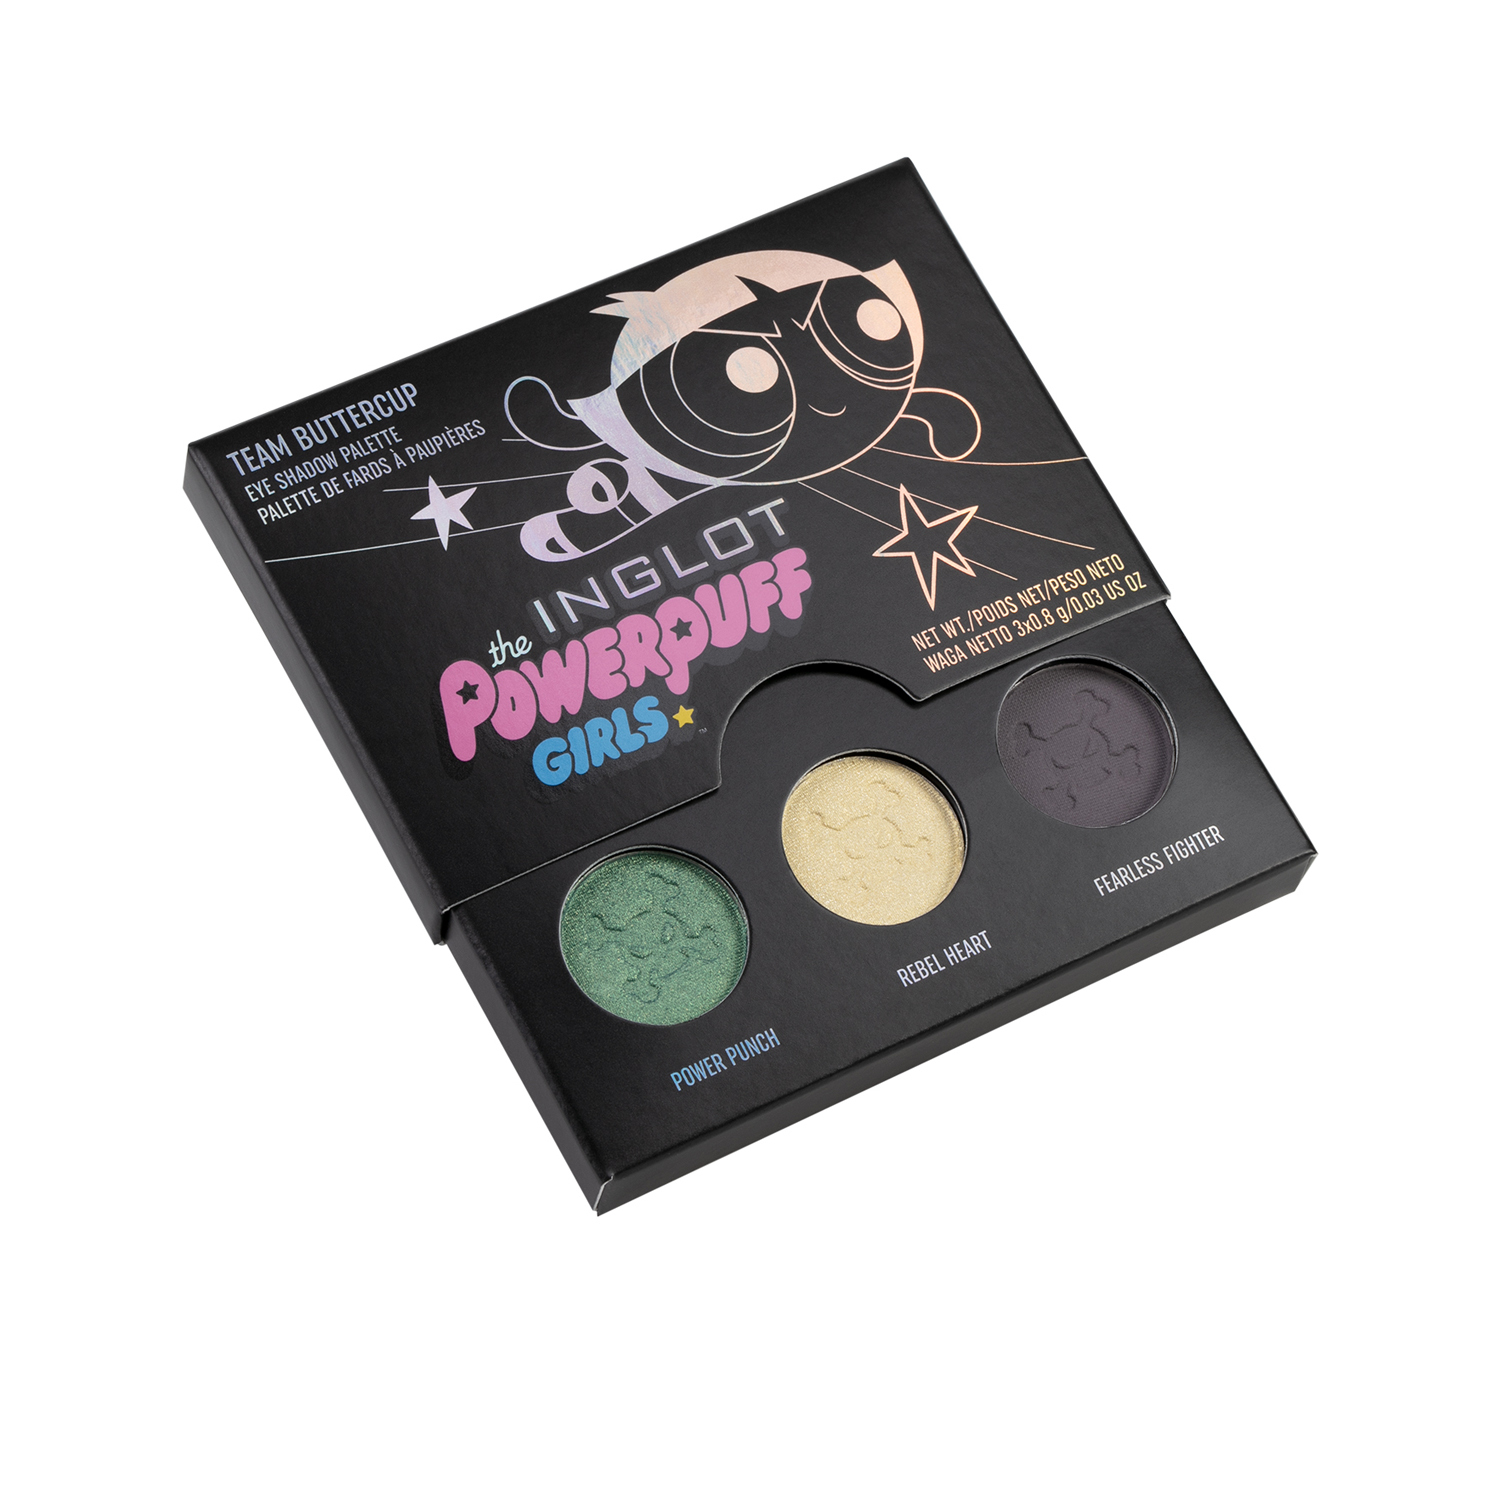 TEAM BUTTERCUP Eye Shadow Palette open.jpg